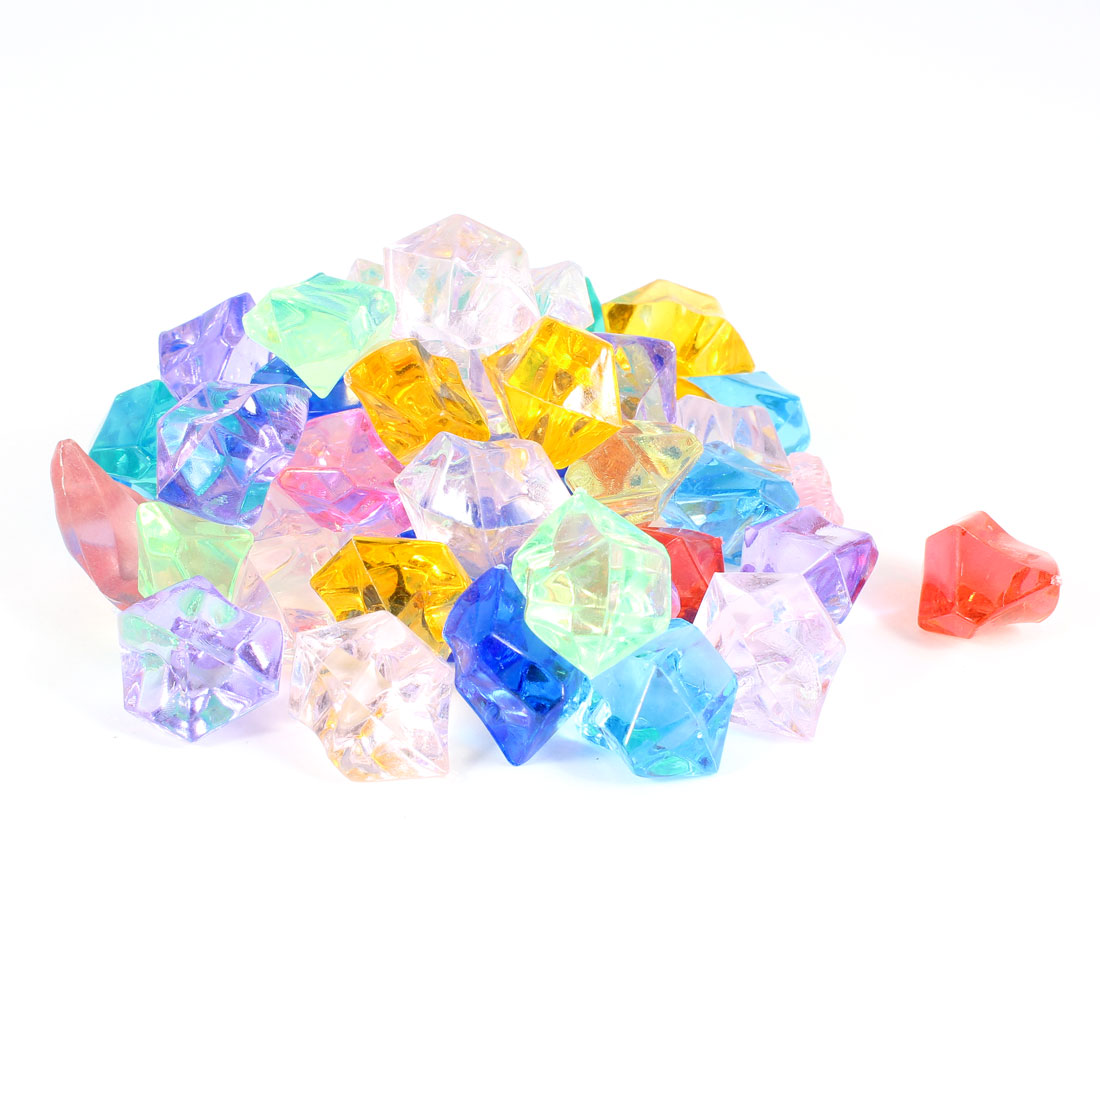 50pcs Plastic Crystal Stones Ornament Coloful for Fish Tank